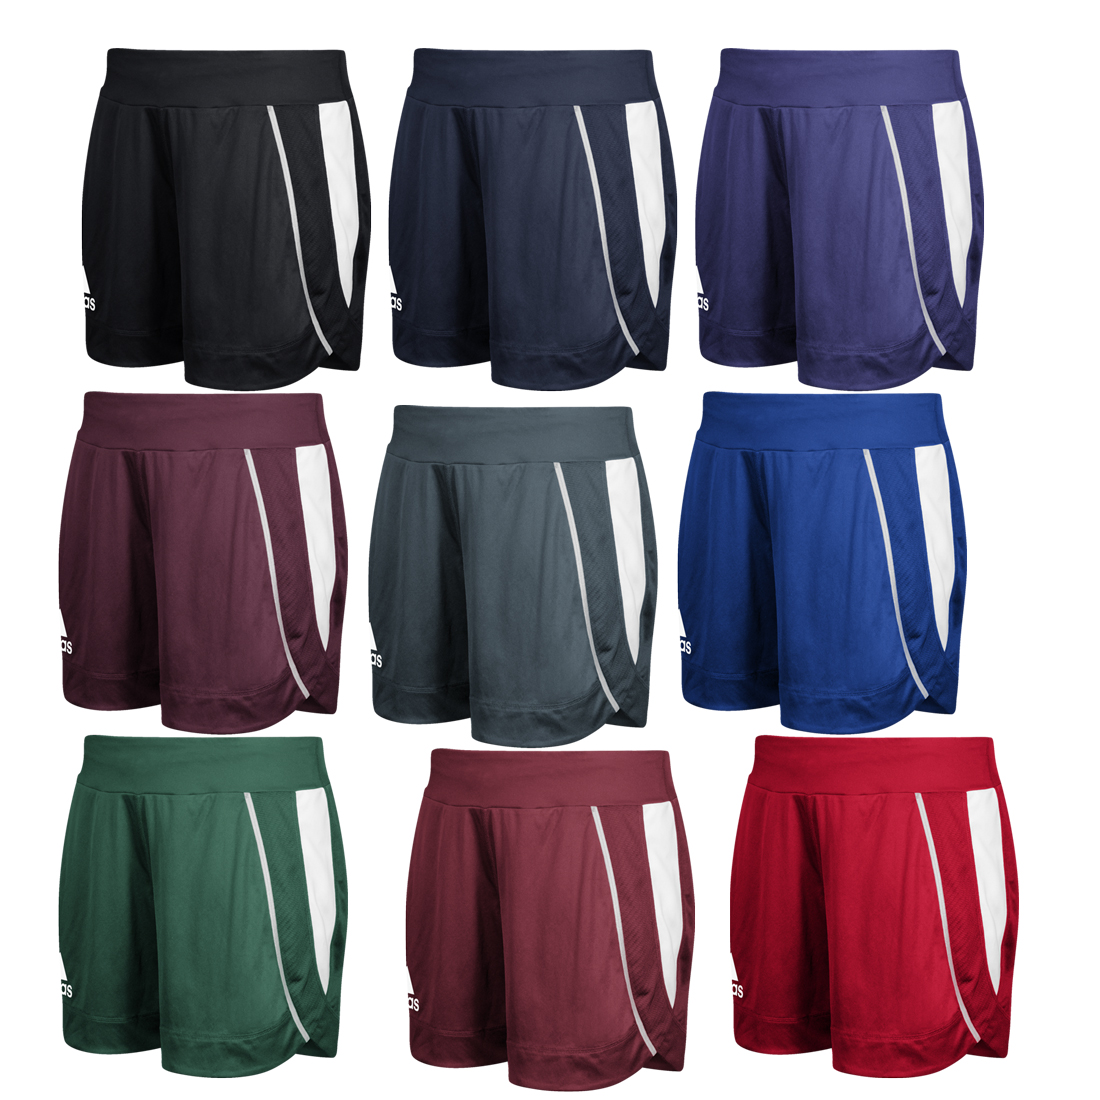 Adidas Ladies Utility Short - longstreth.com